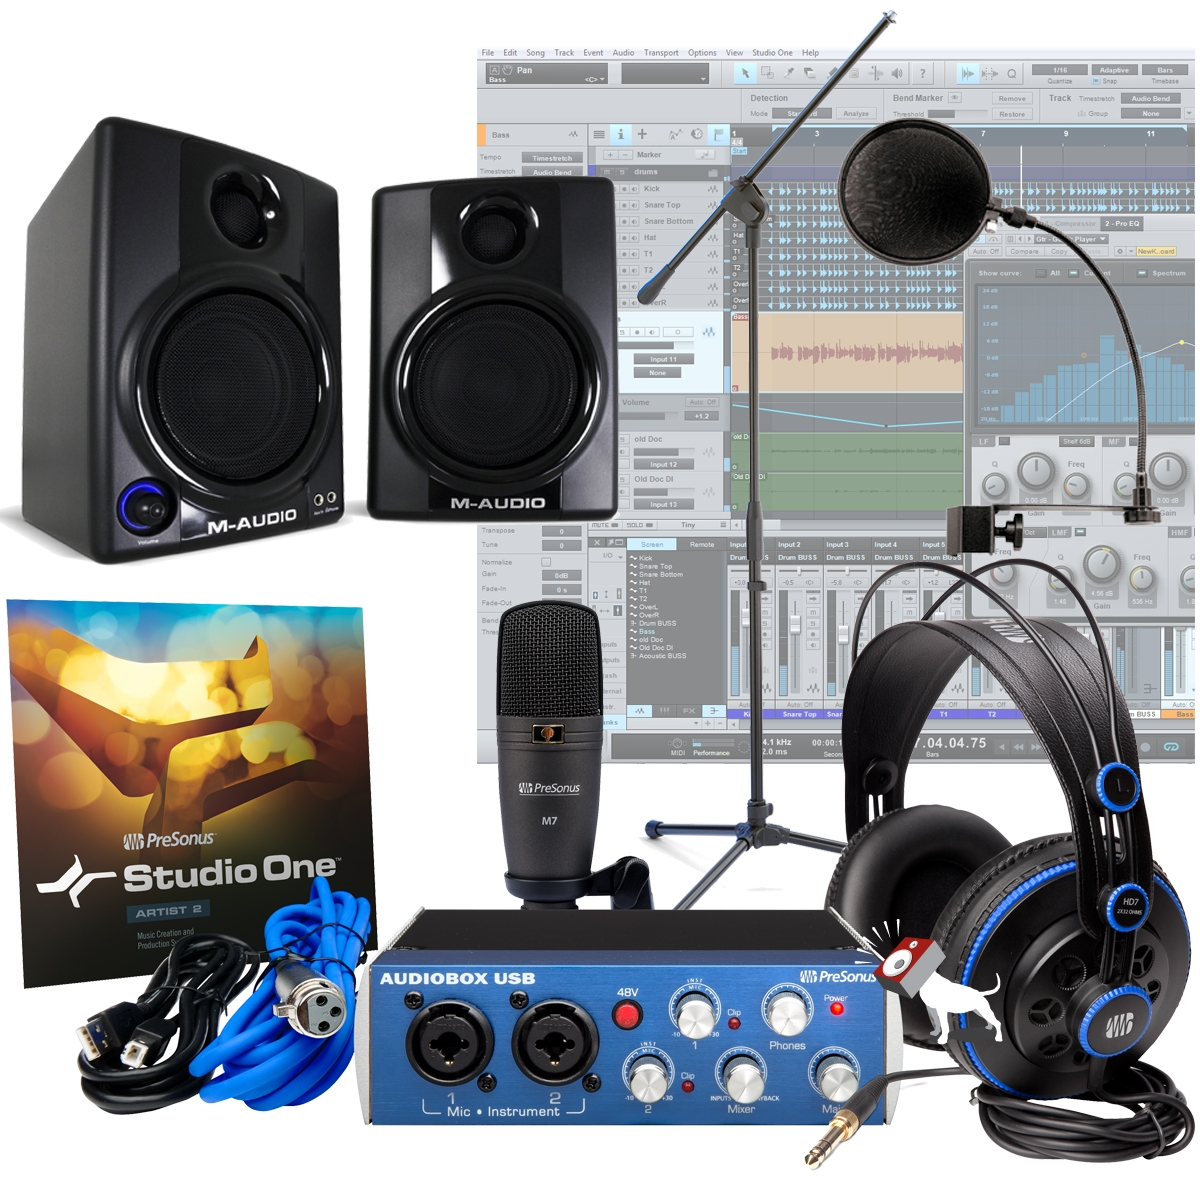 presonus audiobox studio m audio av30 mic home recording package system kit. Black Bedroom Furniture Sets. Home Design Ideas